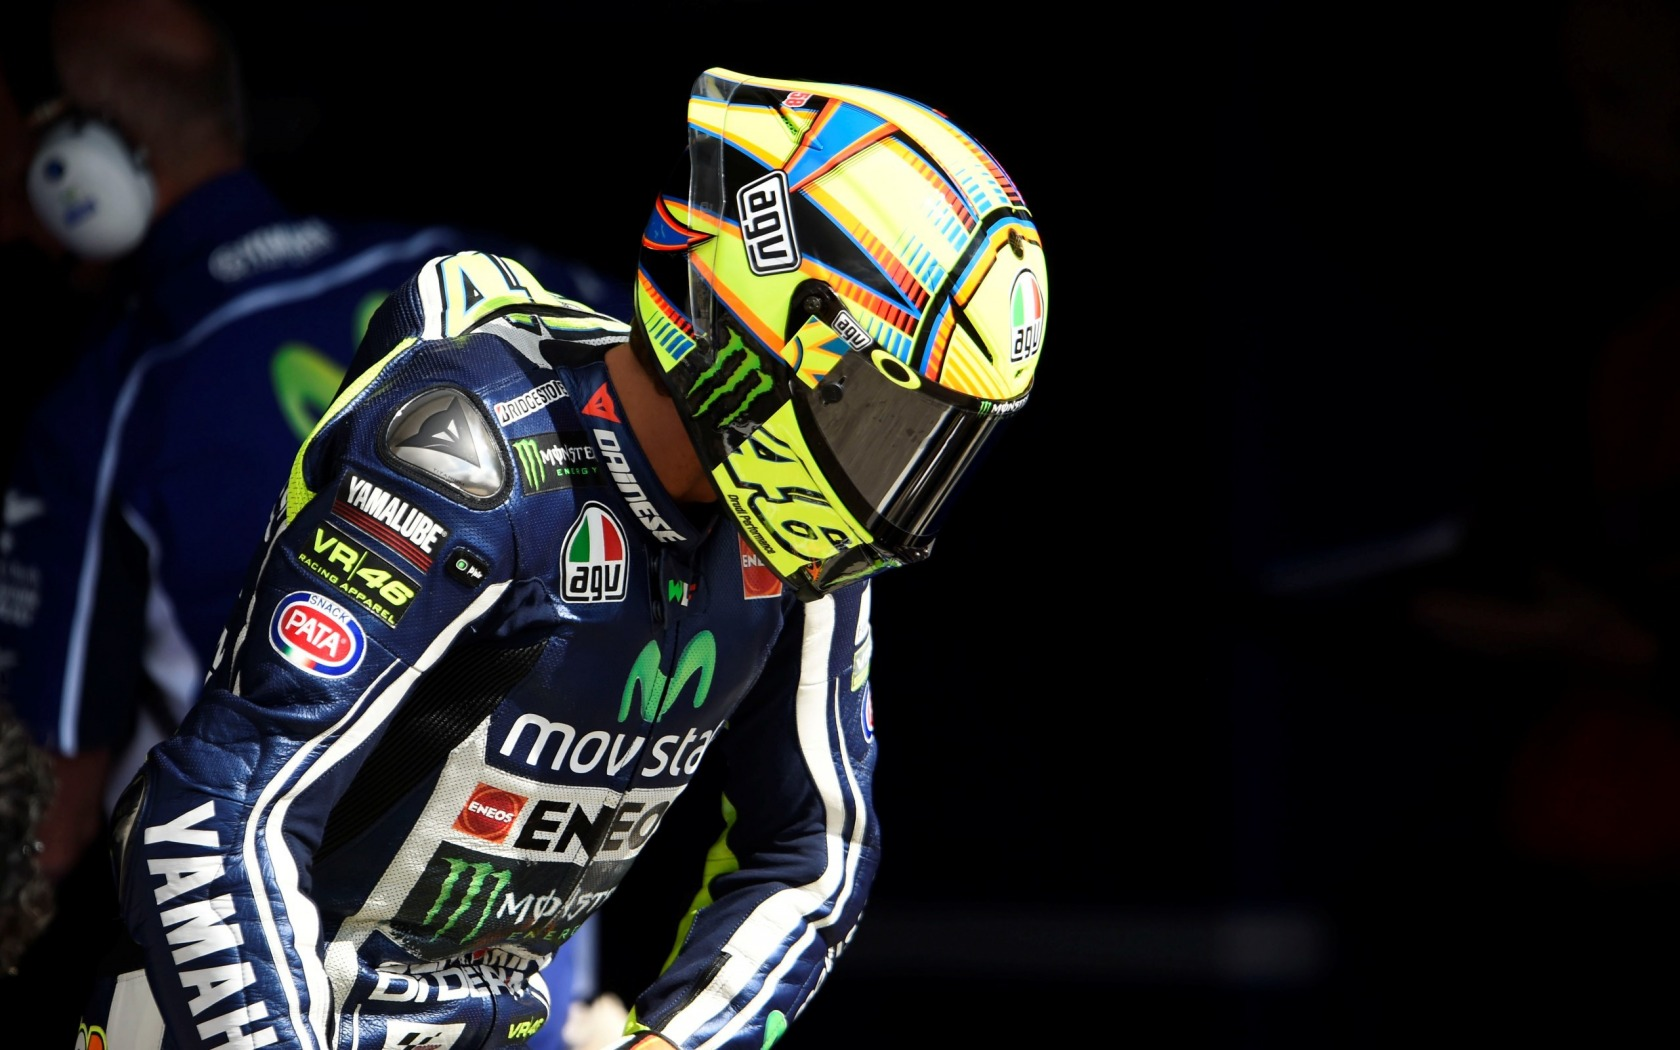 Valentino Rossi Motogp 2015 Wallpaper Full HD Wallpaper with 1680x1050 1680x1050